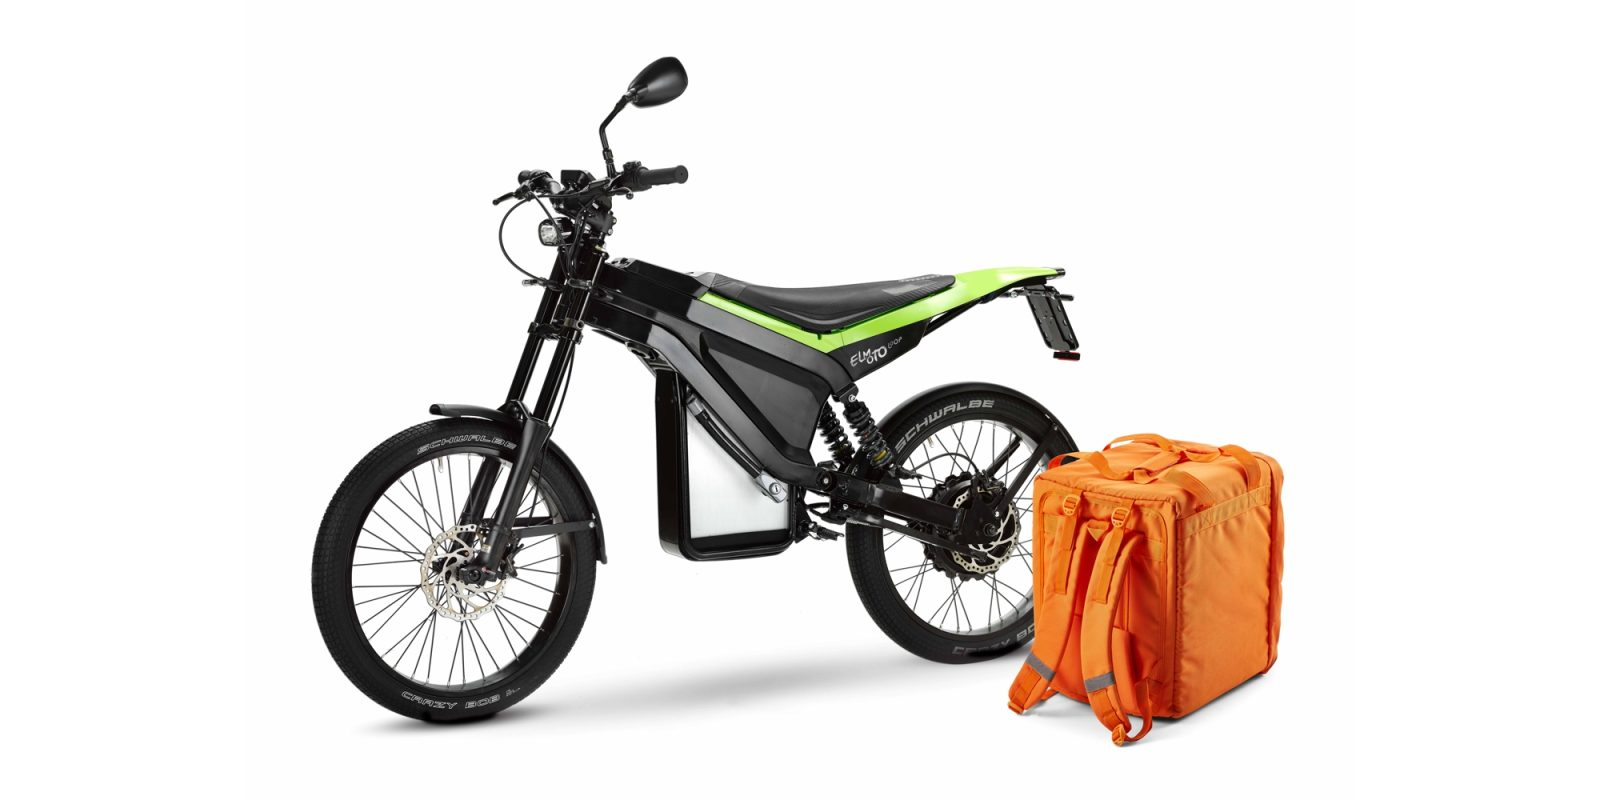 New ELMOTO LOOP light electric motorcycle is a delivery bike I'd ride every day